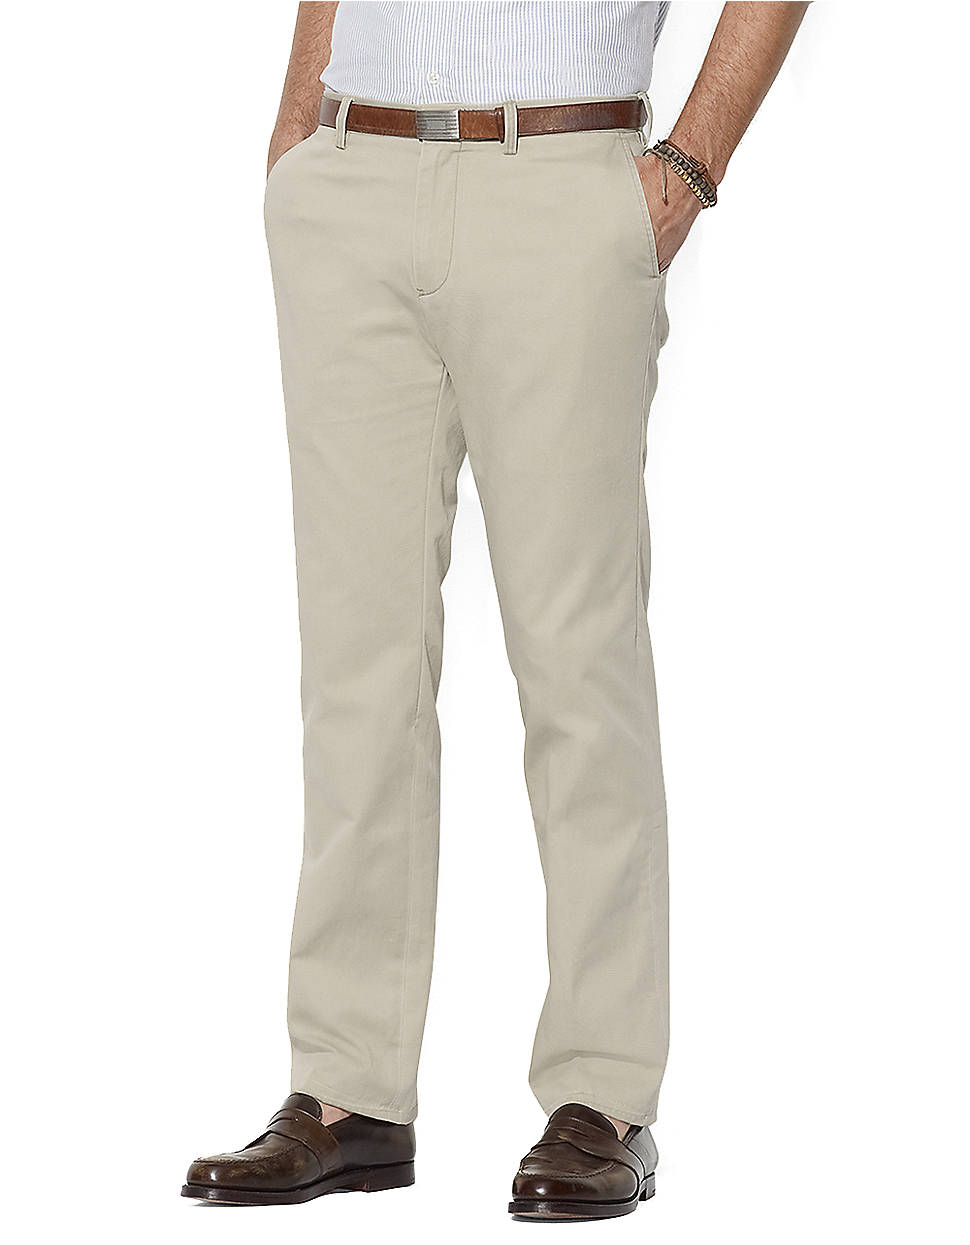 Polo Ralph Lauren Classic Fit Flat Front Chino Pants In